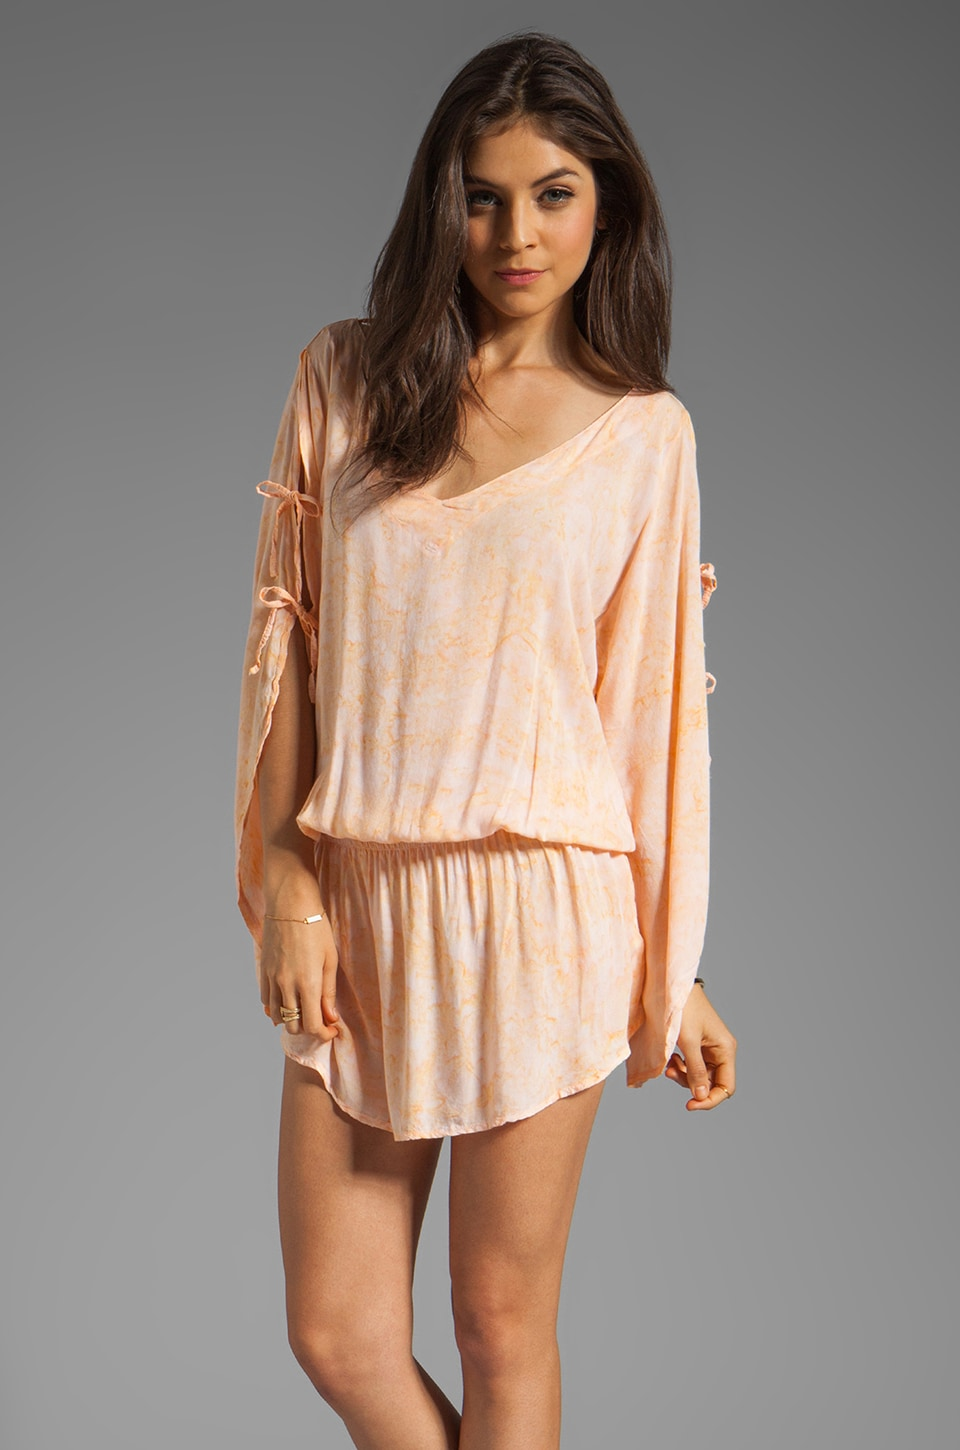 Tiare Hawaii Aphrodite Mini Dress in Melon Smoke